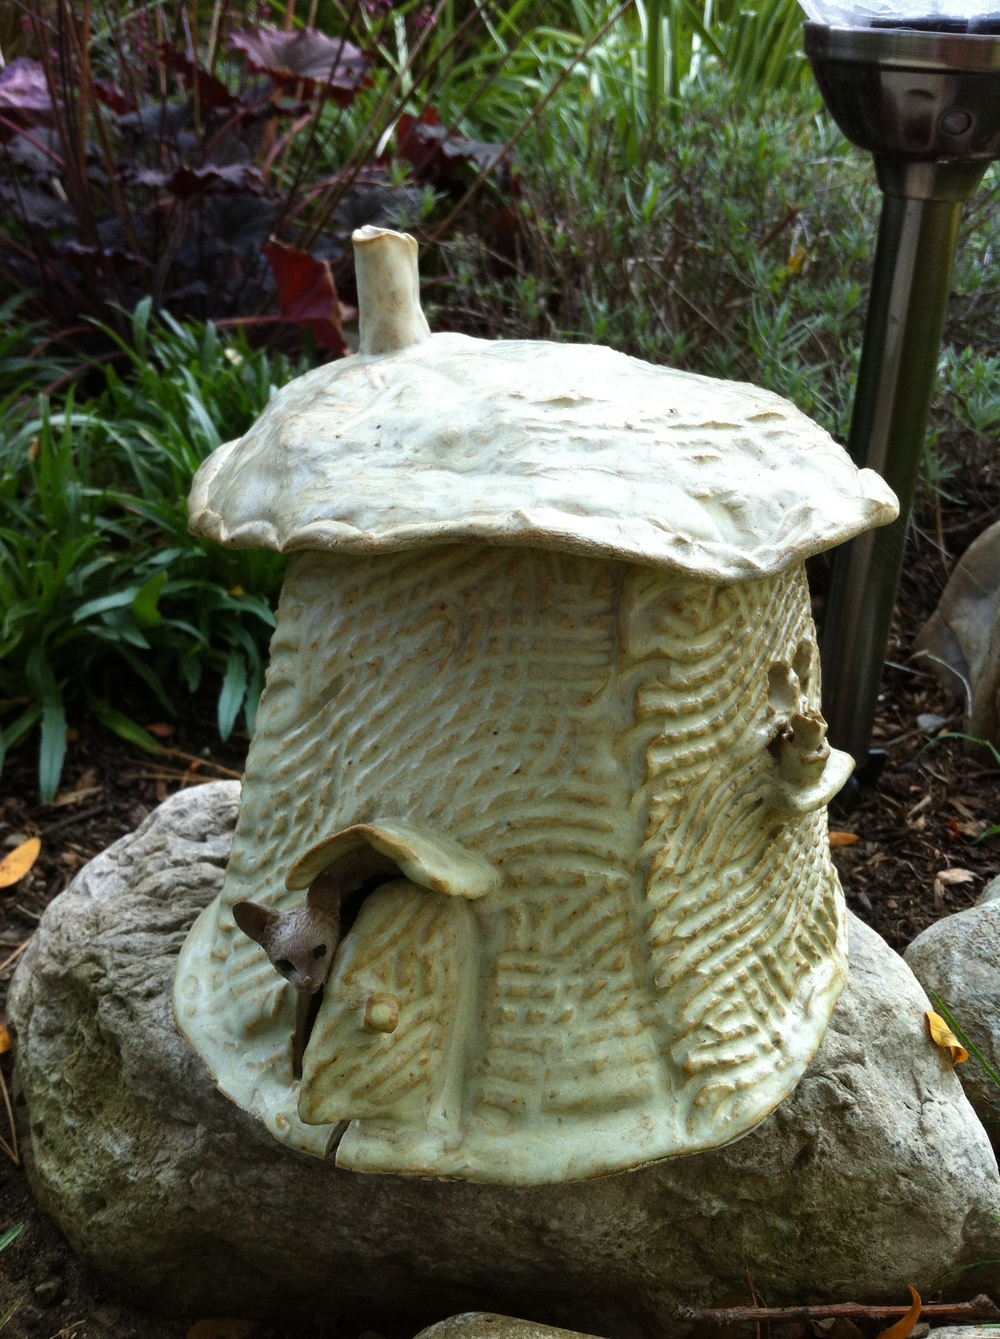 Maybe you want to give the fairies a place of their own in your garden?  Or maybe just something that will delight the kids' imaginations – fairy houses make a fanciful addition to any garden.  This pottery fairy house was created by Marcia Barron.